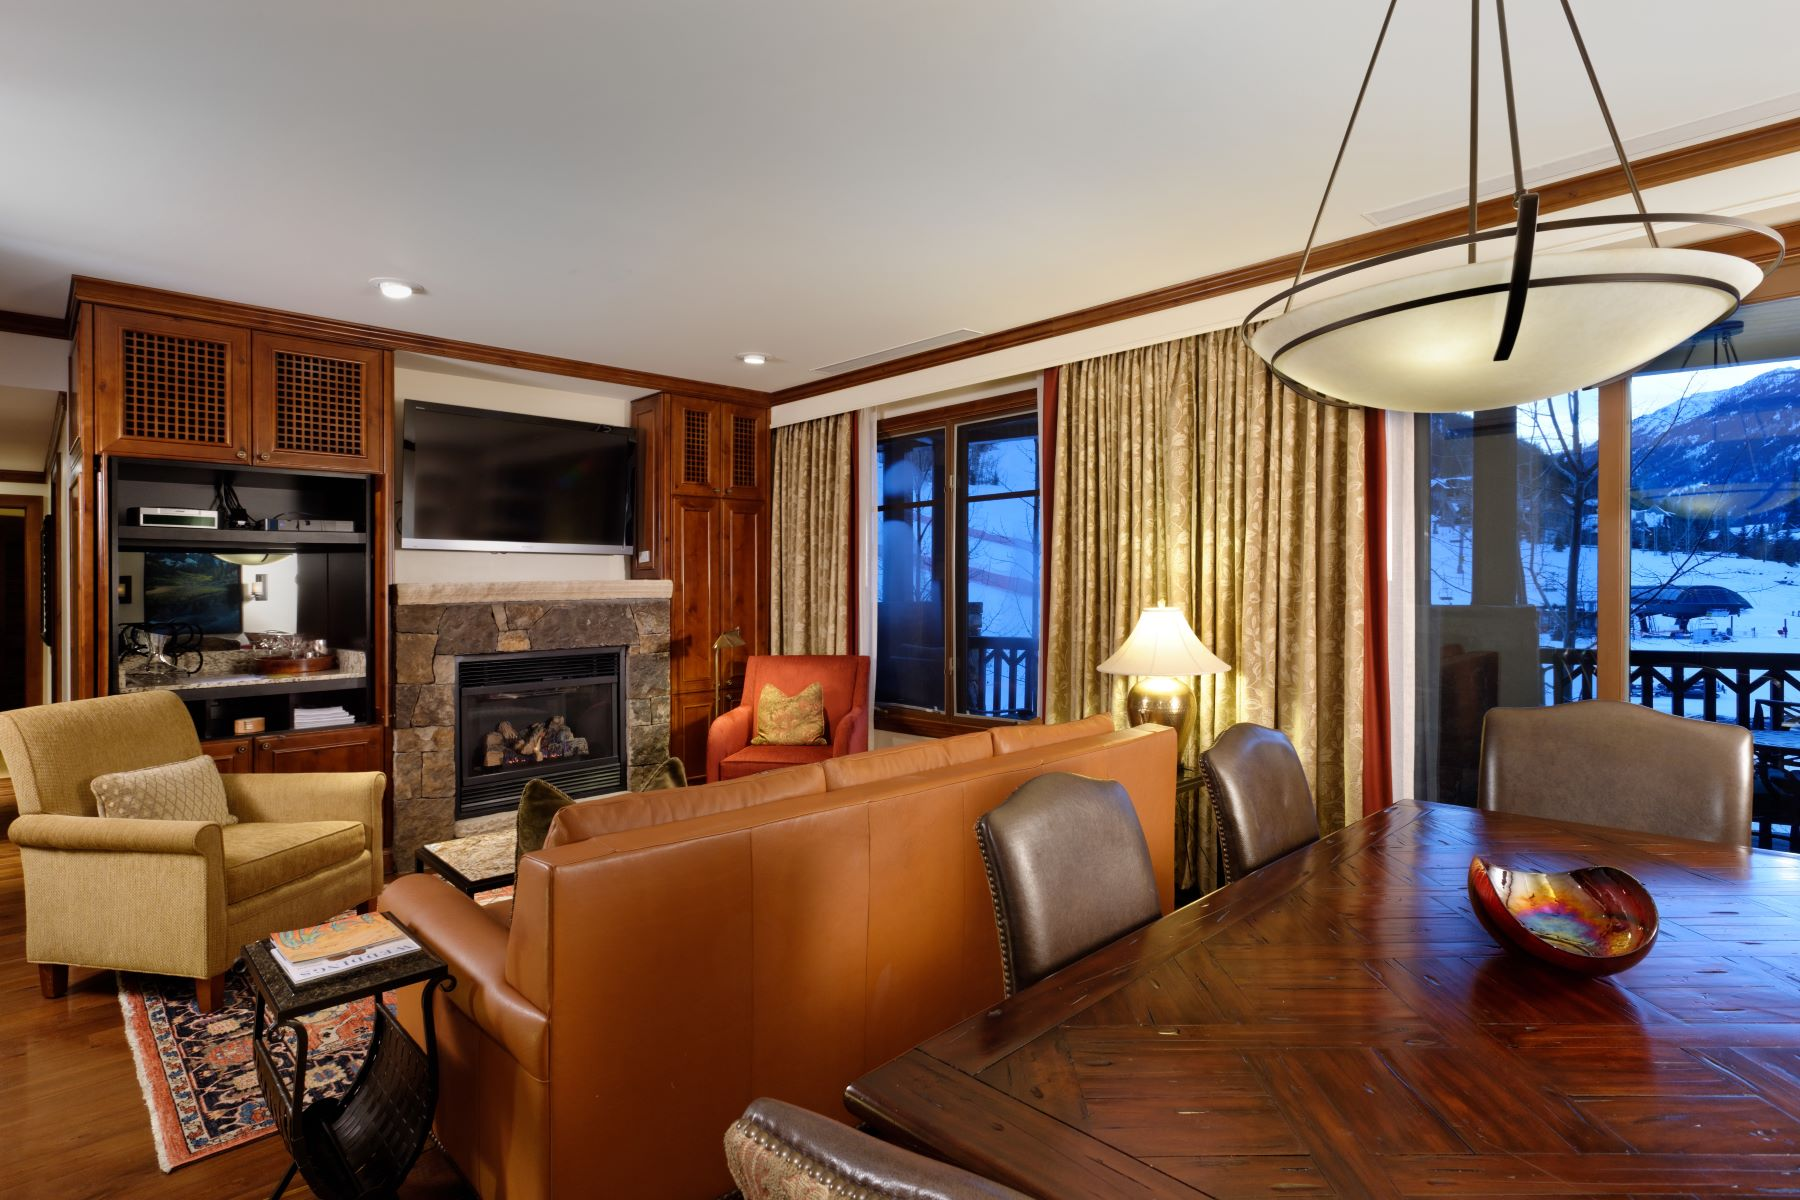 Propriété fractionnée pour l Vente à Ritz-Carlton Club Fractional Condo Interest 0197 Prospector Road, 2312, Fixed Weeks 7, 13 & 24, Ritz-Carlton Club Fractional Condo Interest Aspen, Colorado, 81611 États-Unis